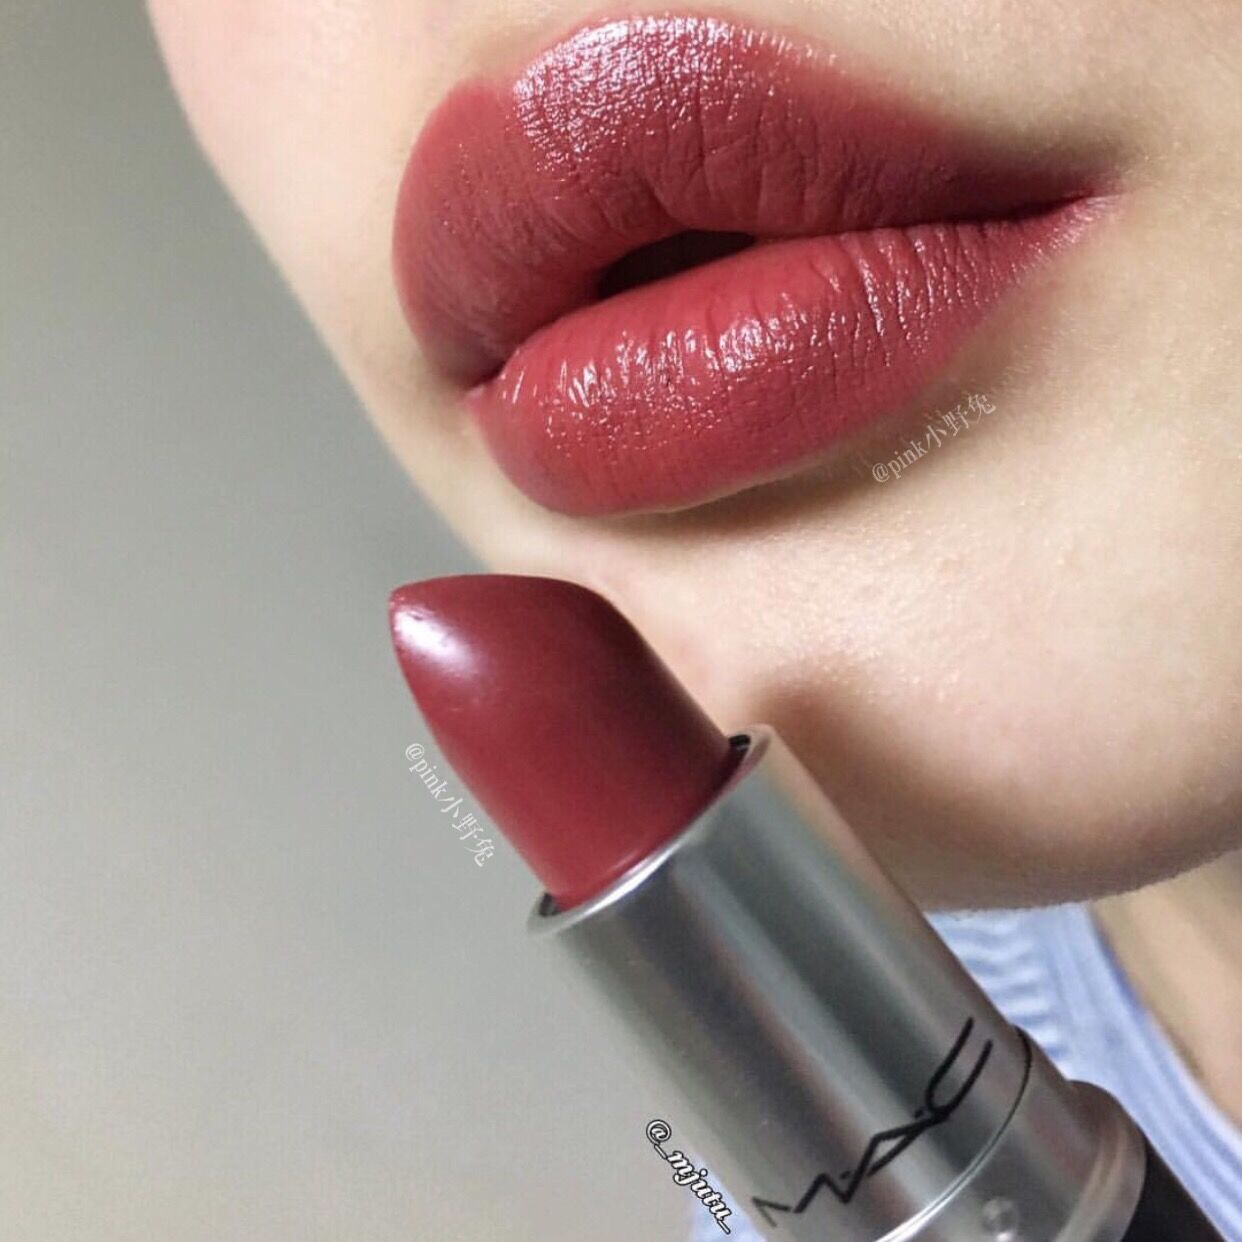 Popolare USD 41.47] ! Duty-free shop mac charm can lipstick chili sheer  RI16